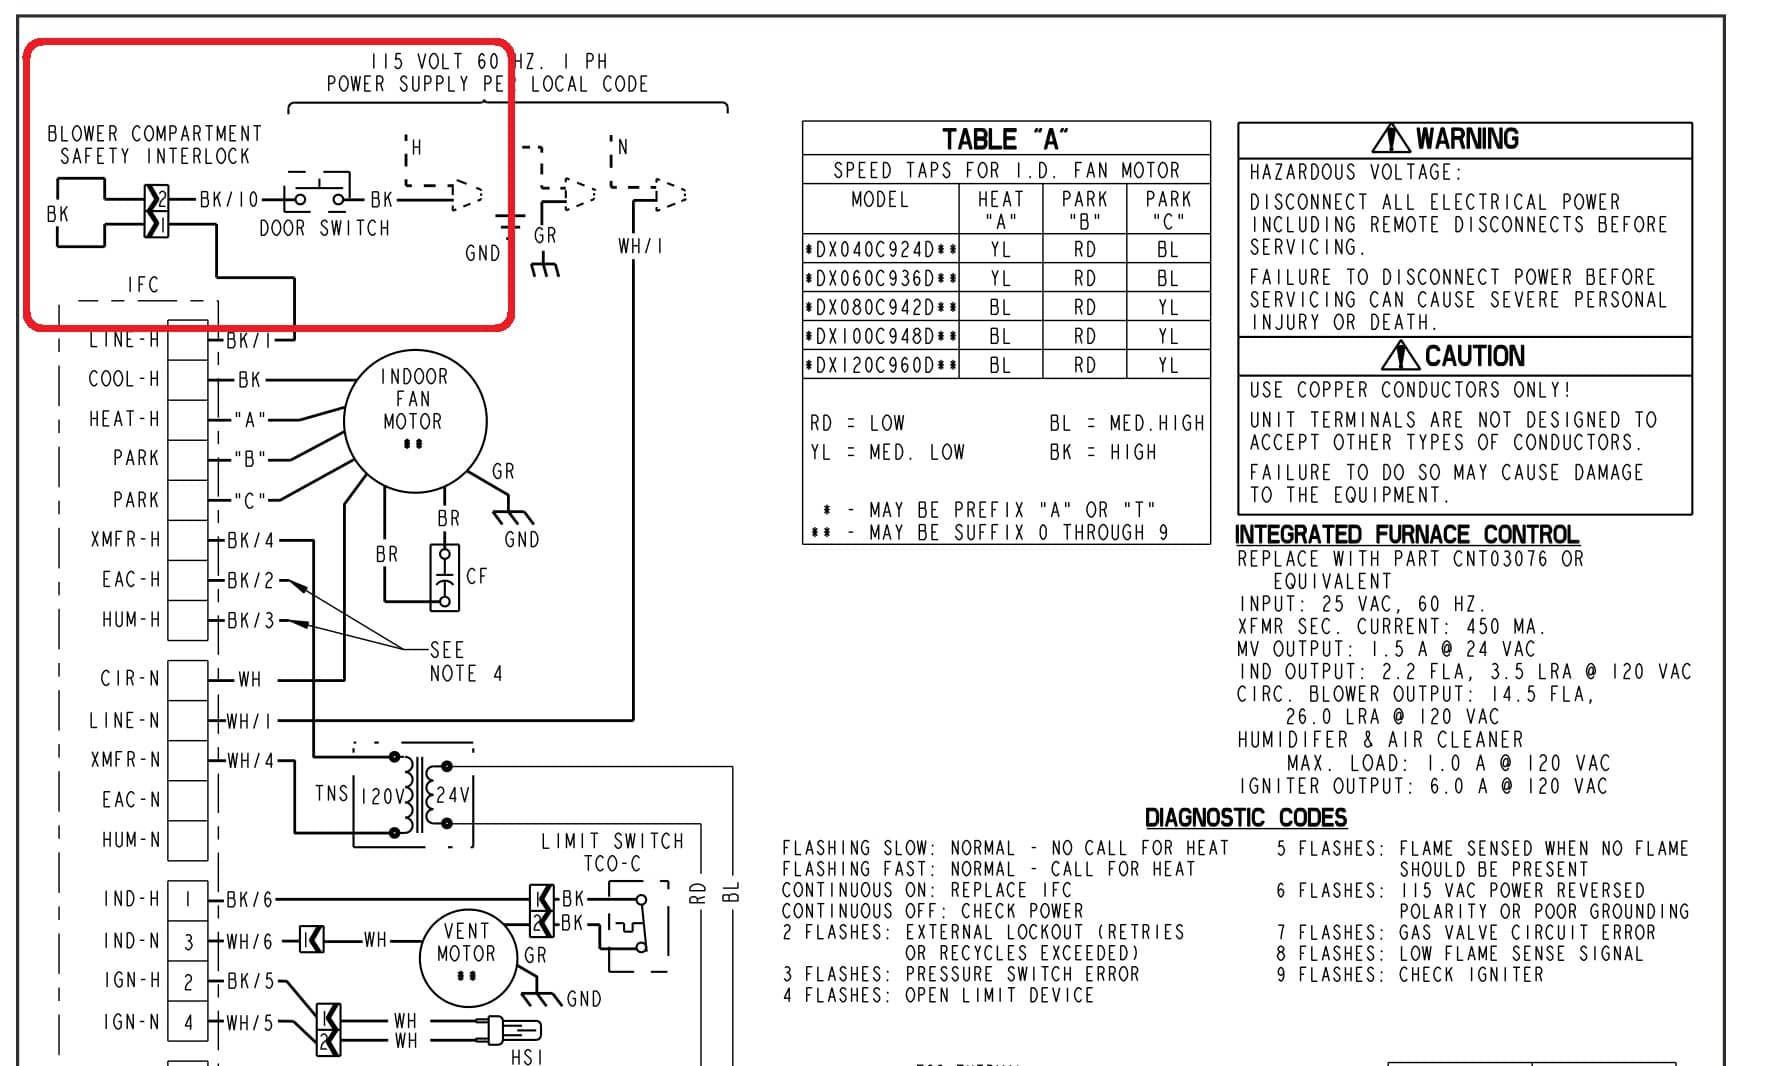 hight resolution of trane blower compartment door switch wiring c inspectapedia trane com